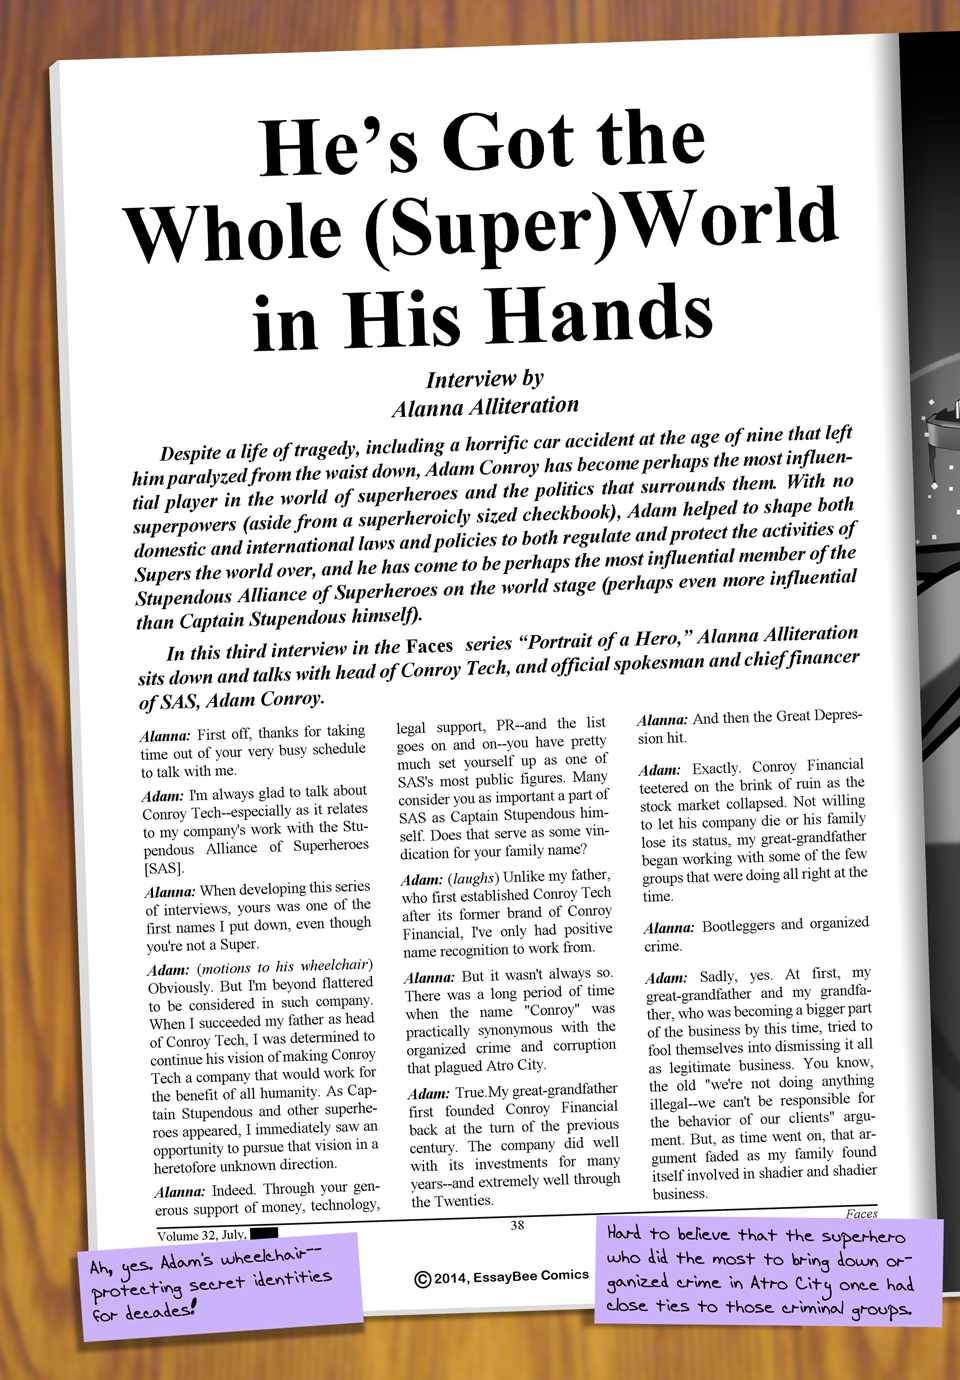 Interleude--Faces Magazine Interview 3 Page 1